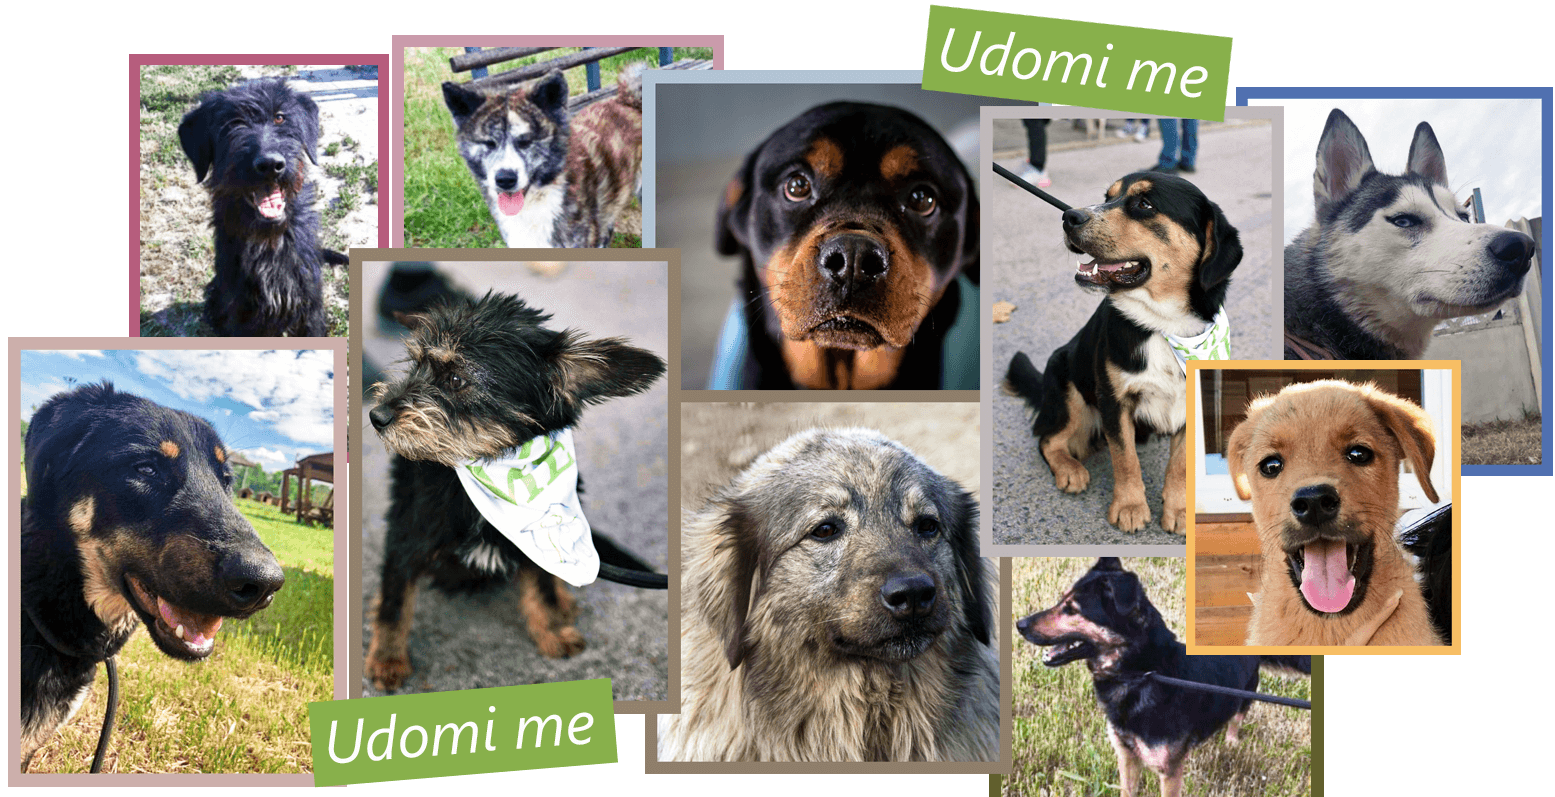 Udomi-me-featured